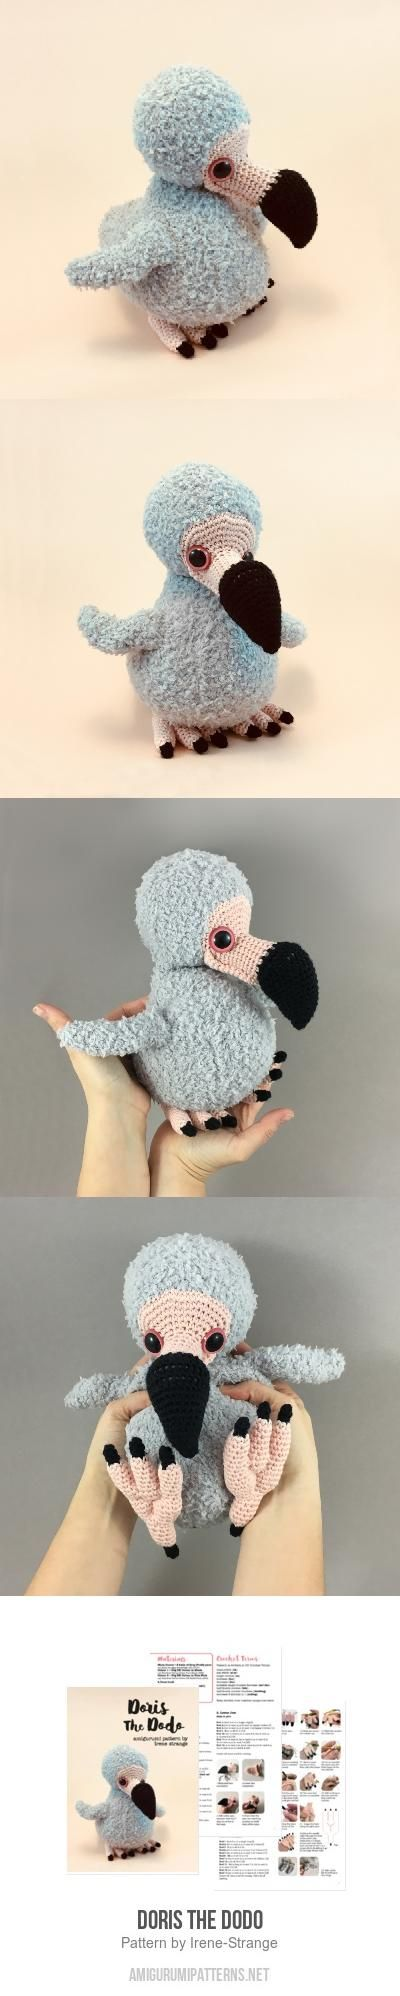 Doris The Dodo Amigurumi Pattern